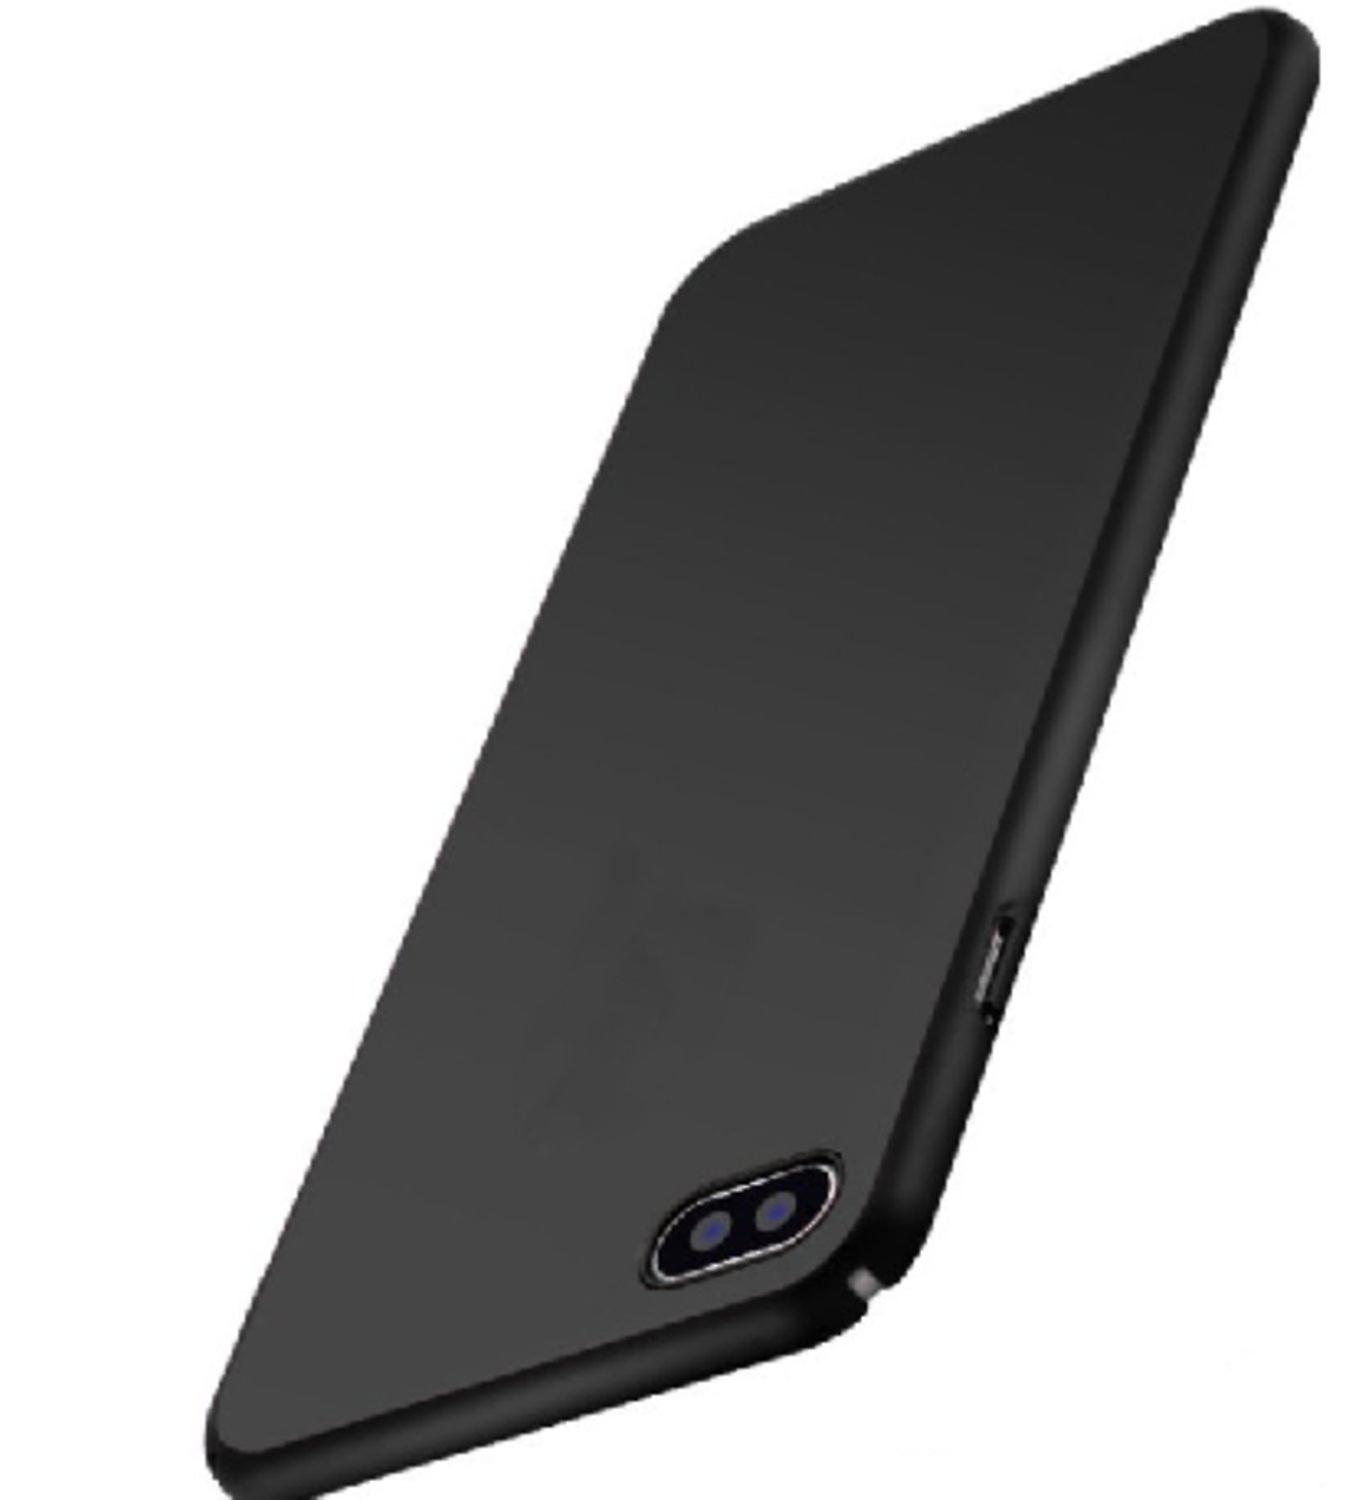 Frosted Black Case - iPhone 7 Plus!